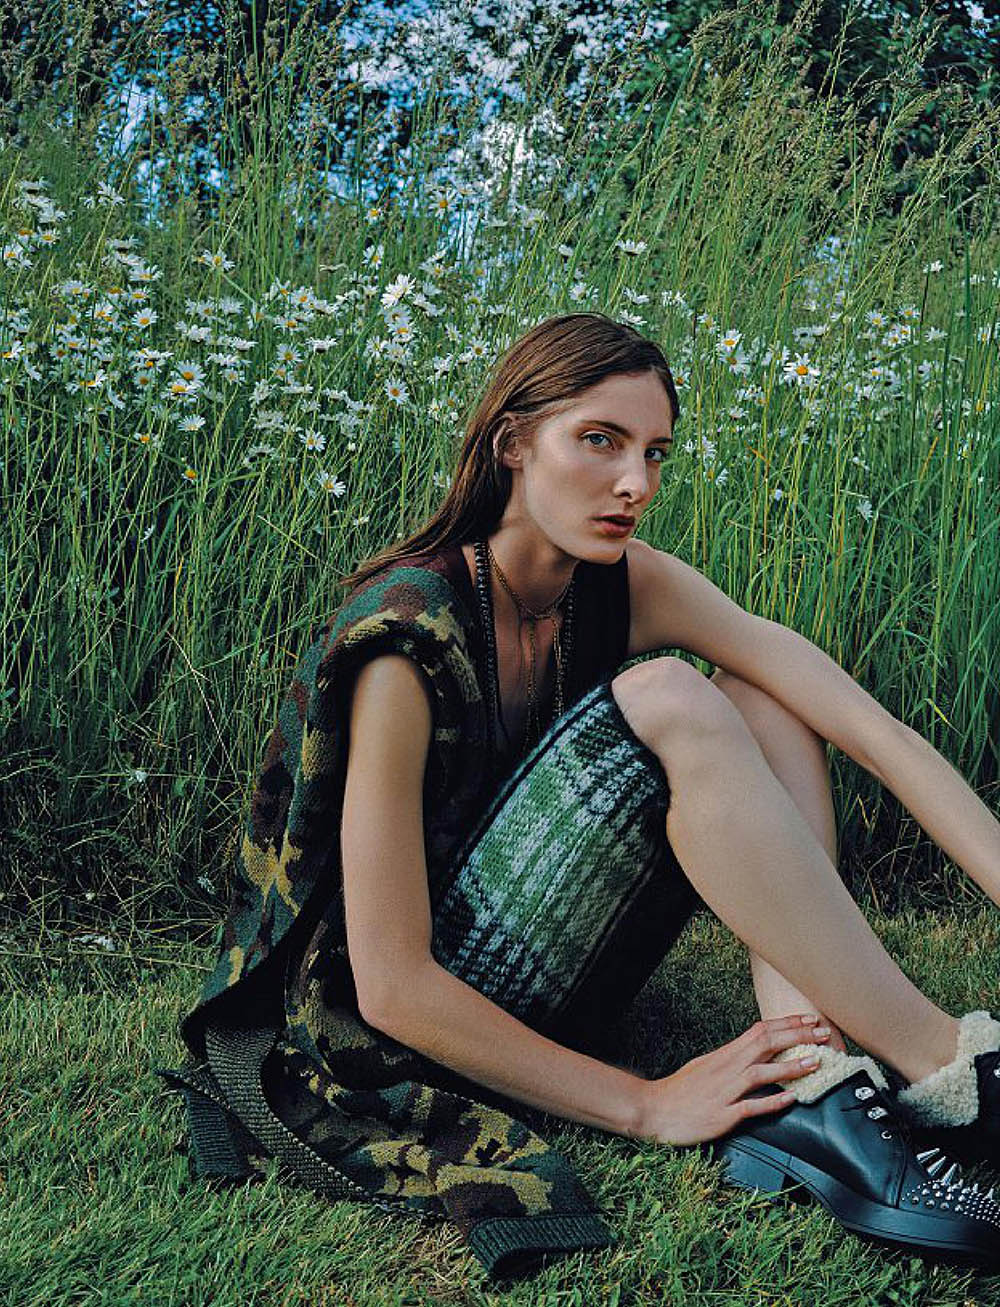 Annie-Tice-by-Paul-McLean-for-Amica-Magazine-September-2019-1.jpg